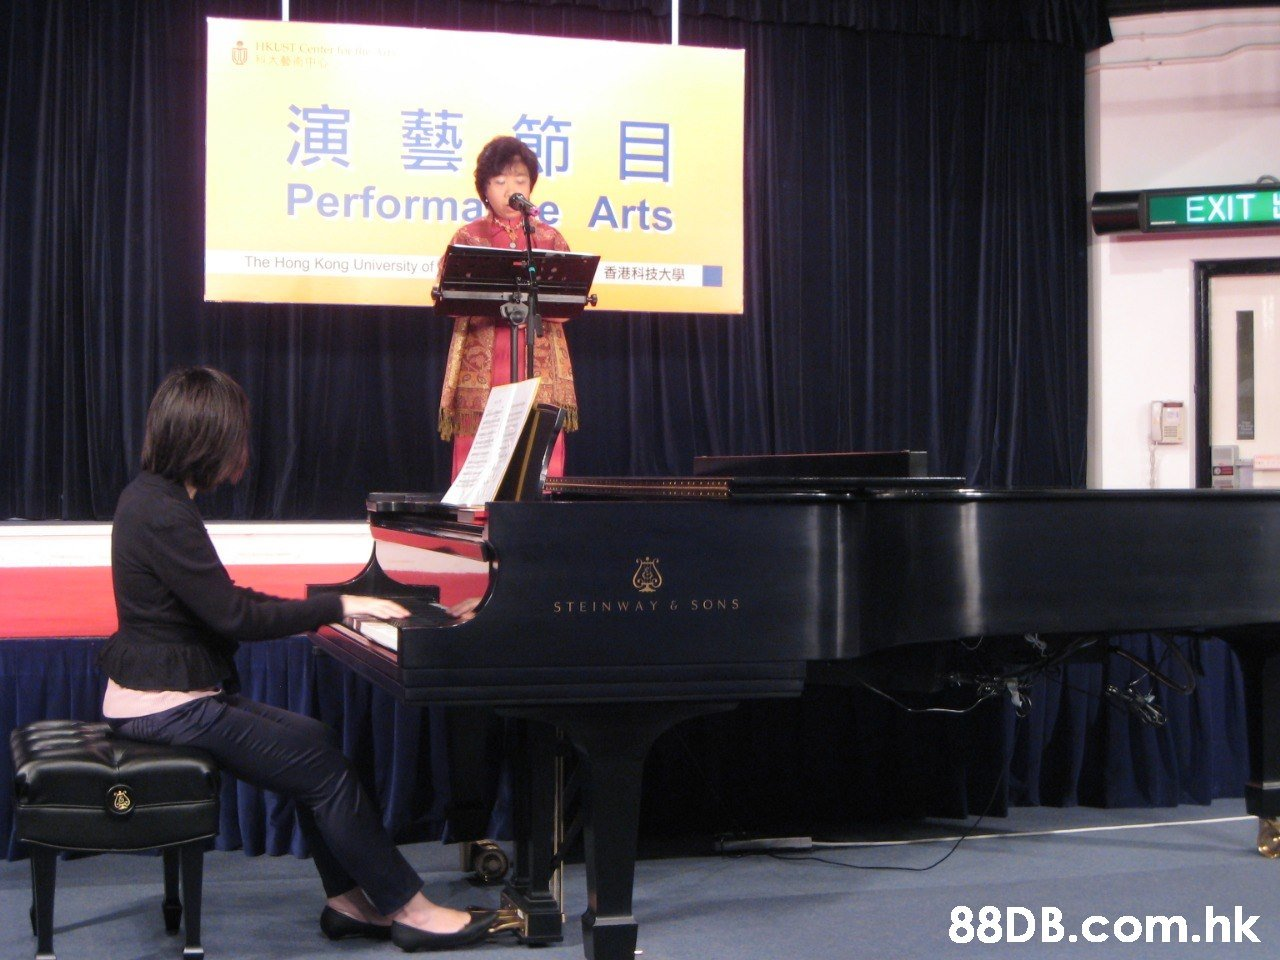 Performa Arts EXIT The Hong Kong University of 香港科技大學 S TEINWAY &SONS .hk  Recital,Pianist,Event,Musician,Technology